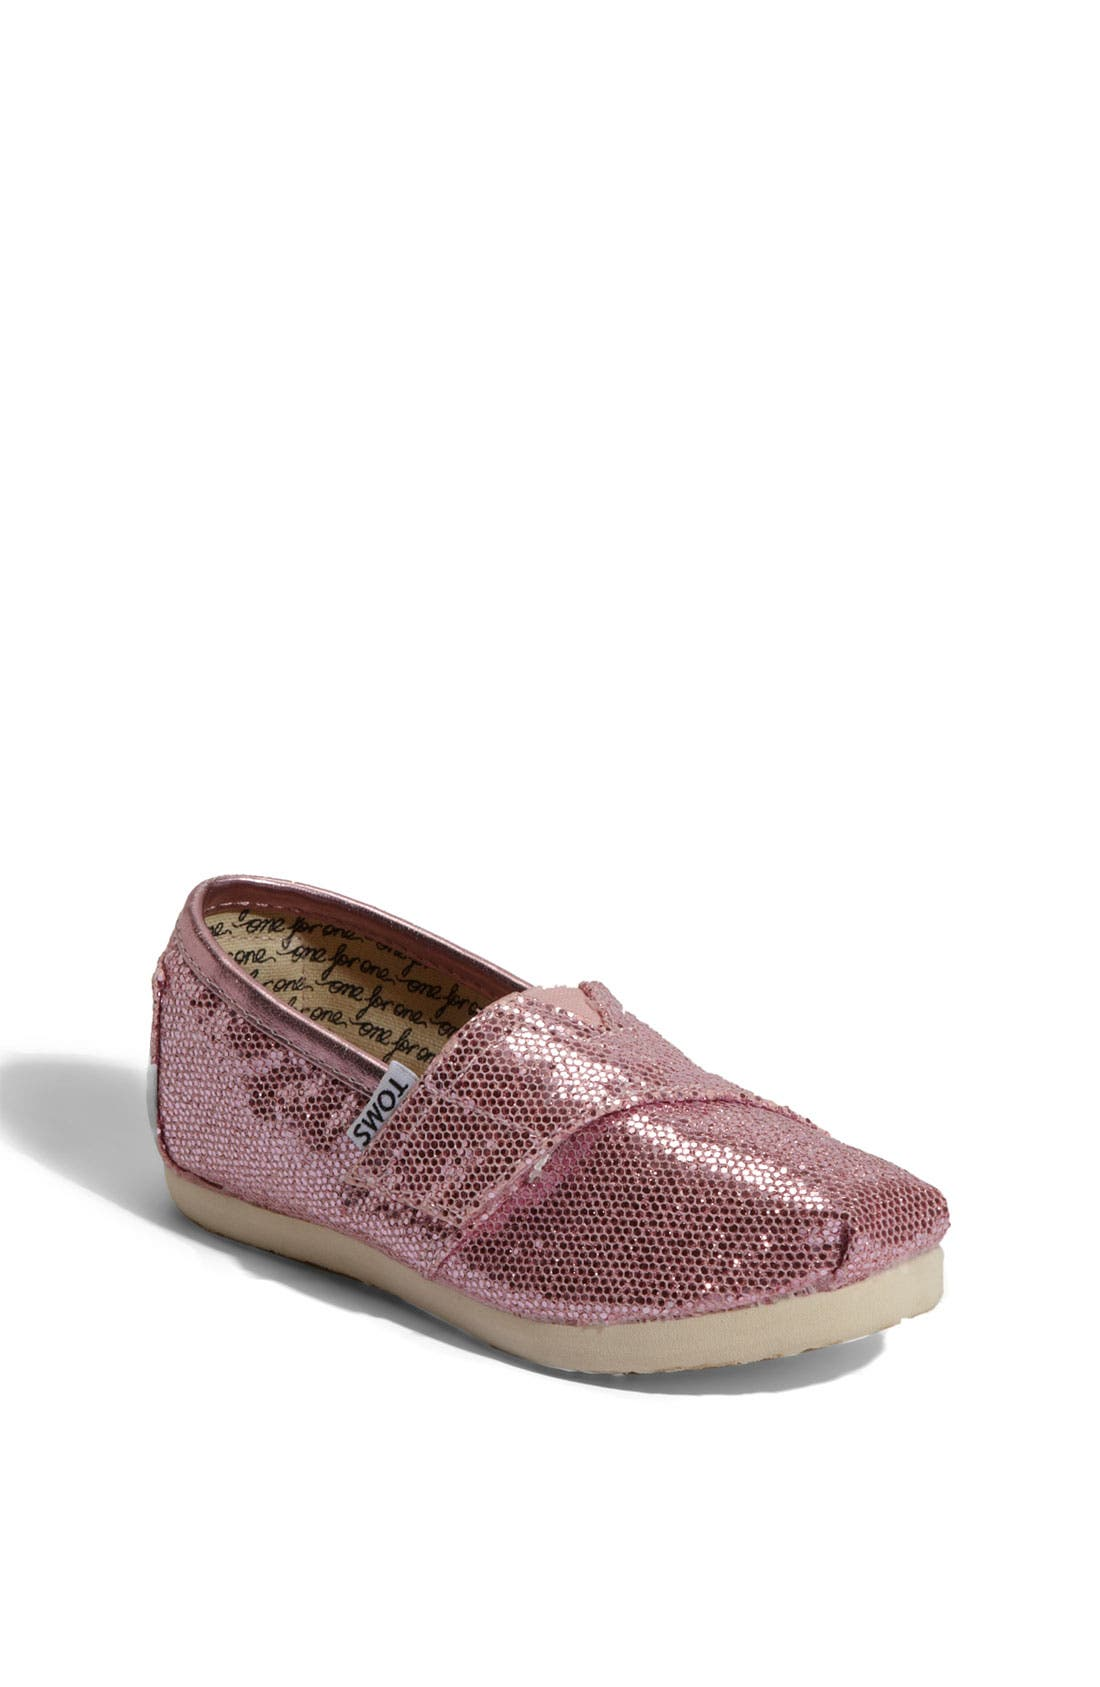 Main Image - TOMS 'Classic - Tiny' Canvas Slip-On (Toddler)